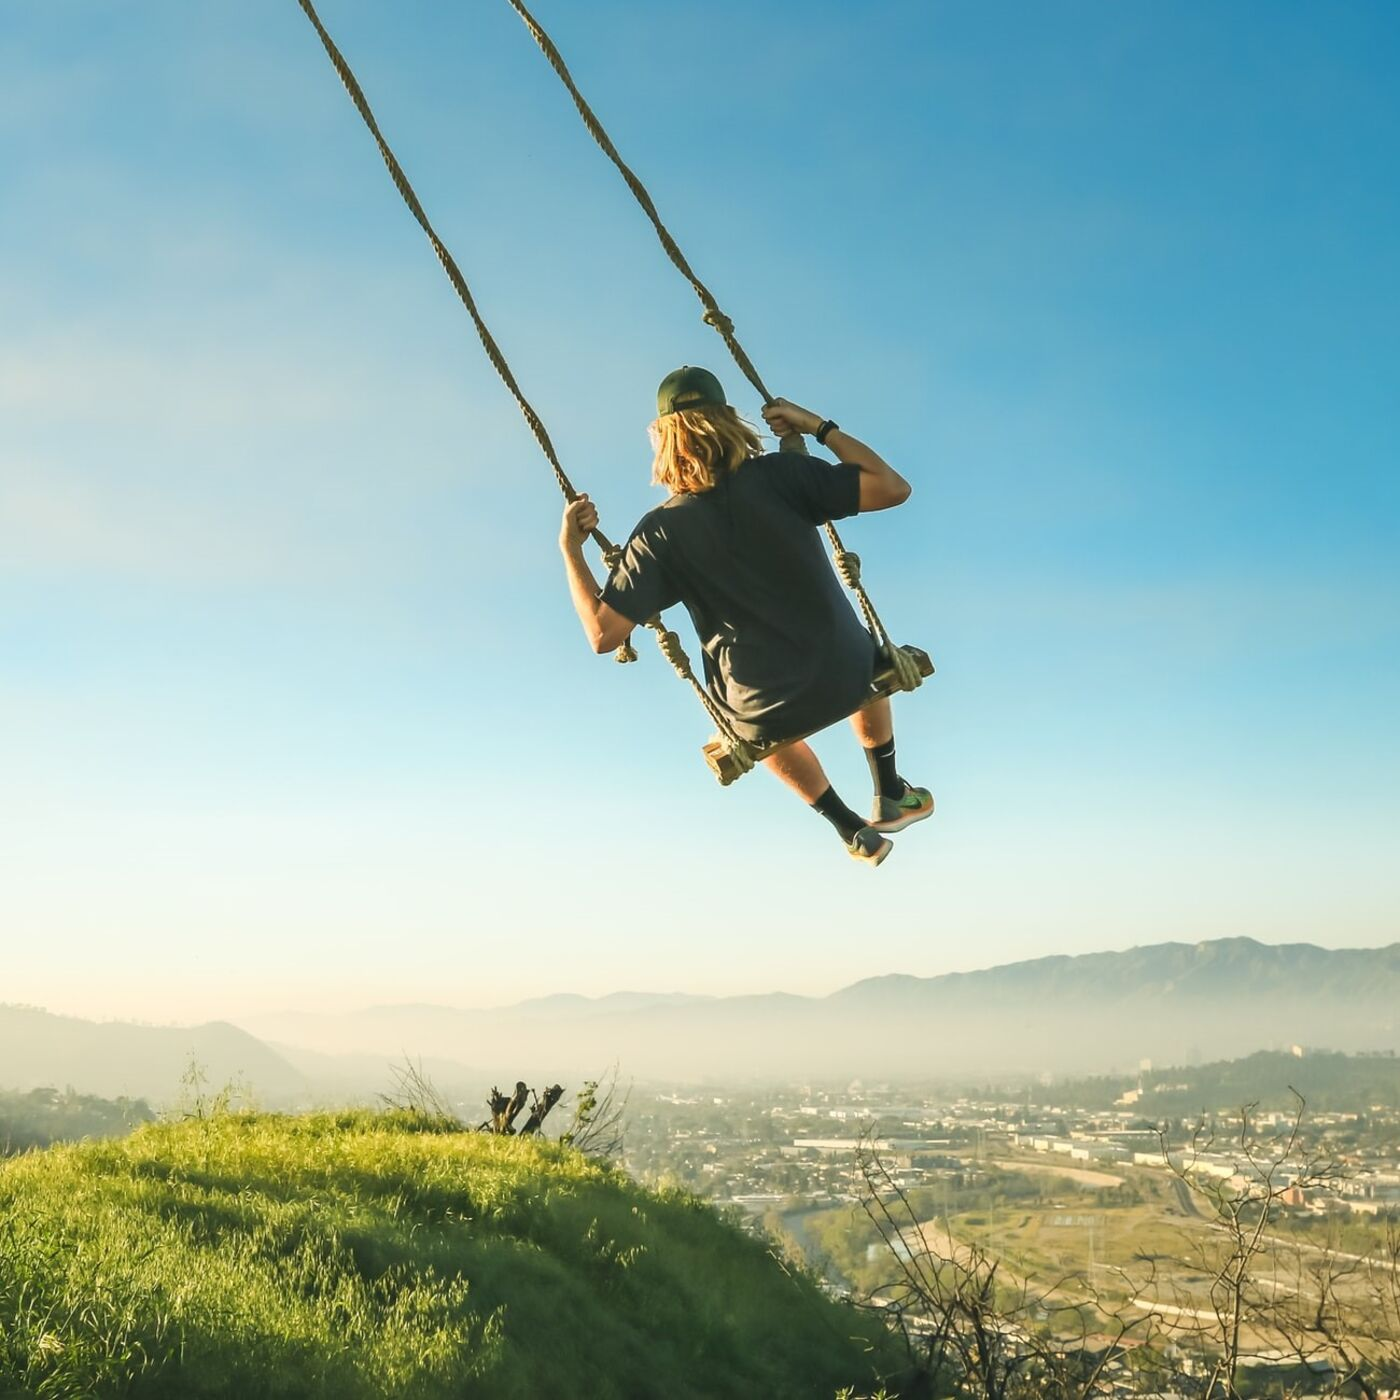 How to Experience More Freedom in Your Life